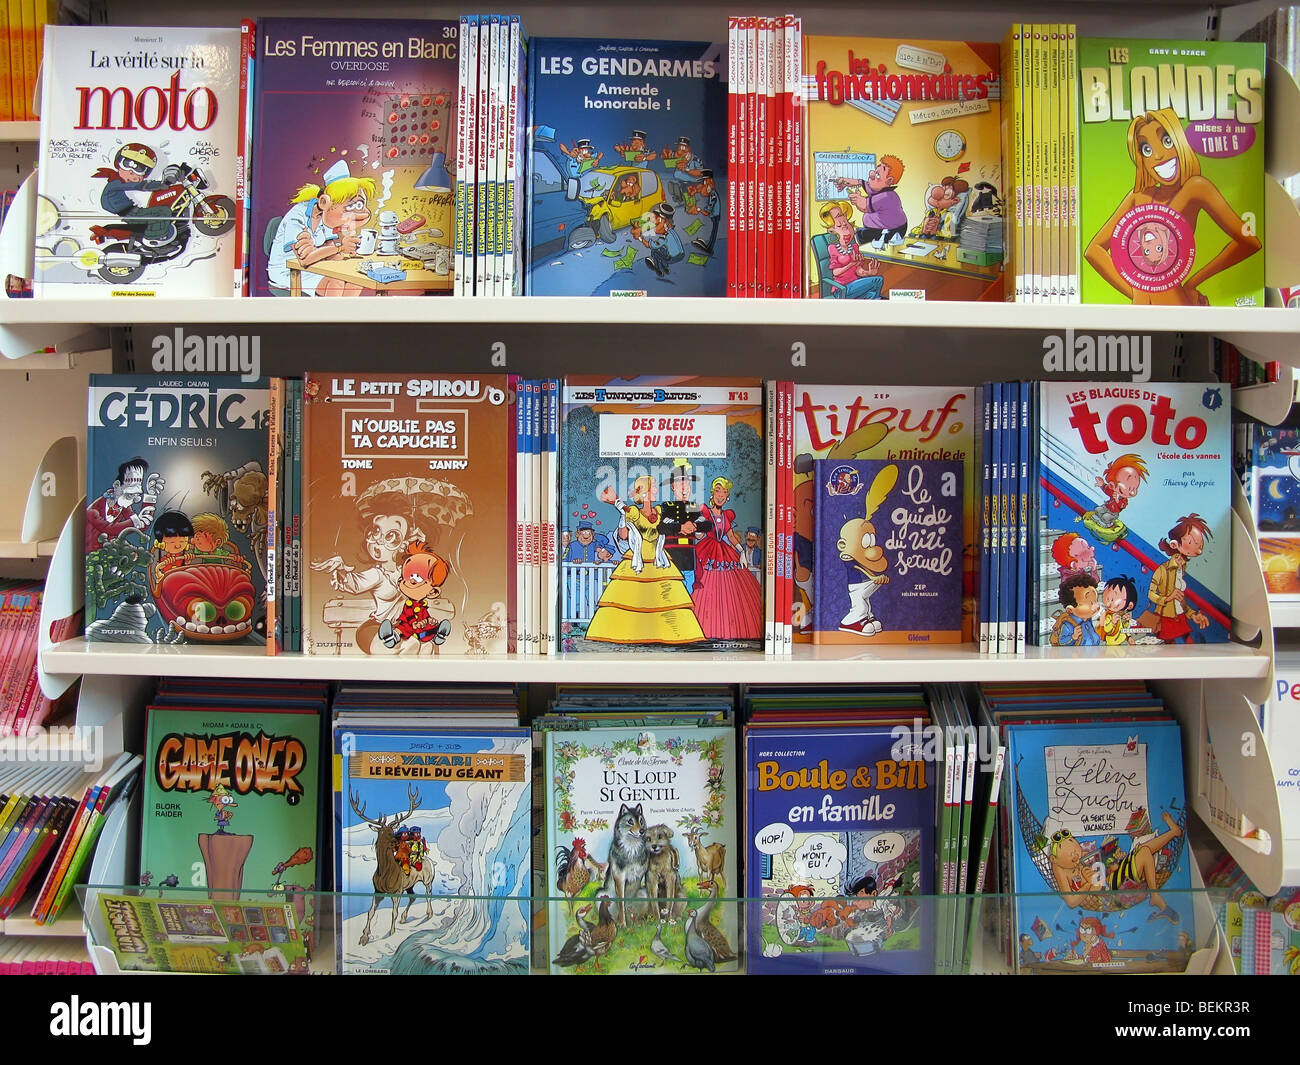 bandes dessinees books in a French supermarket - Stock Image